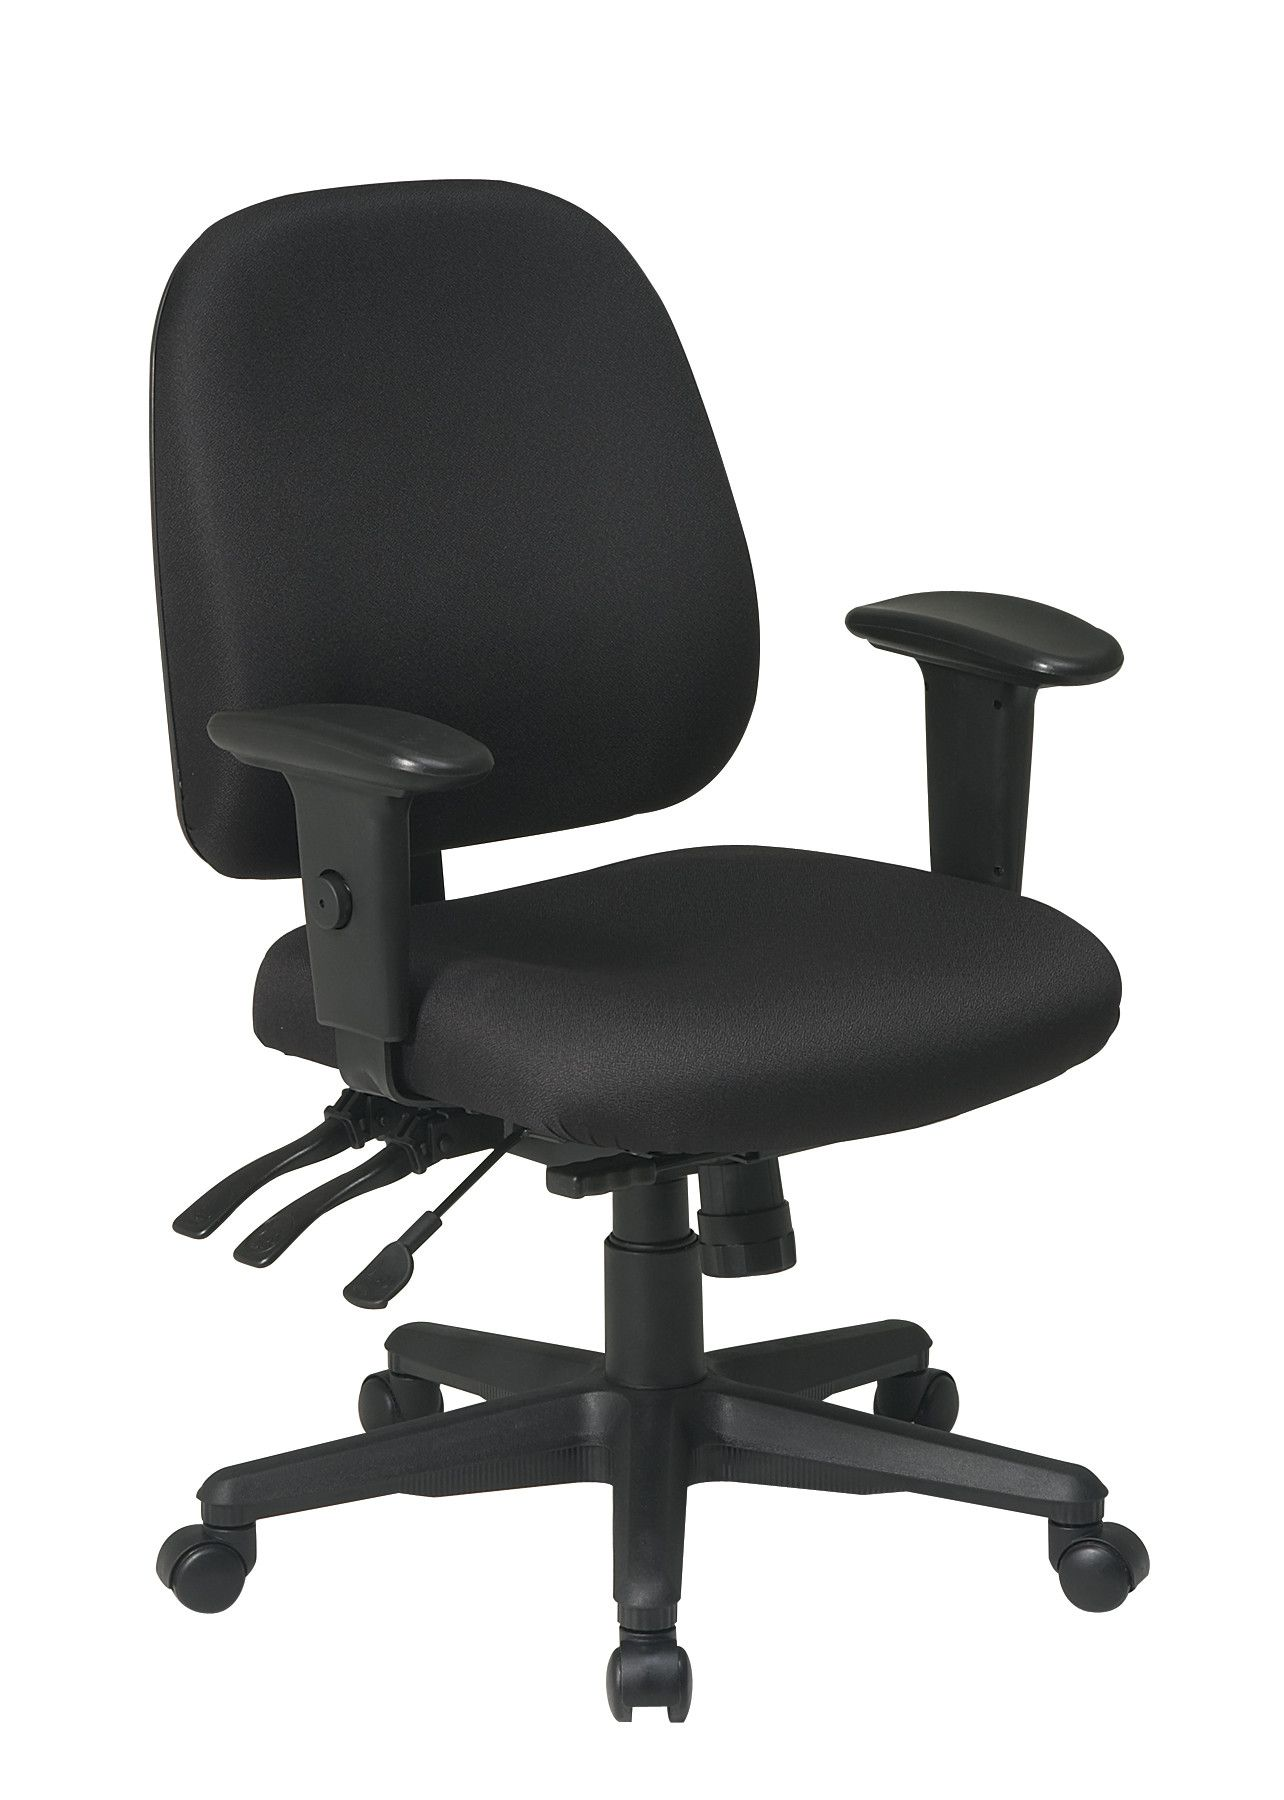 Office Star Ergonomic Mid Back Chair With Arms Reviews Wayfair